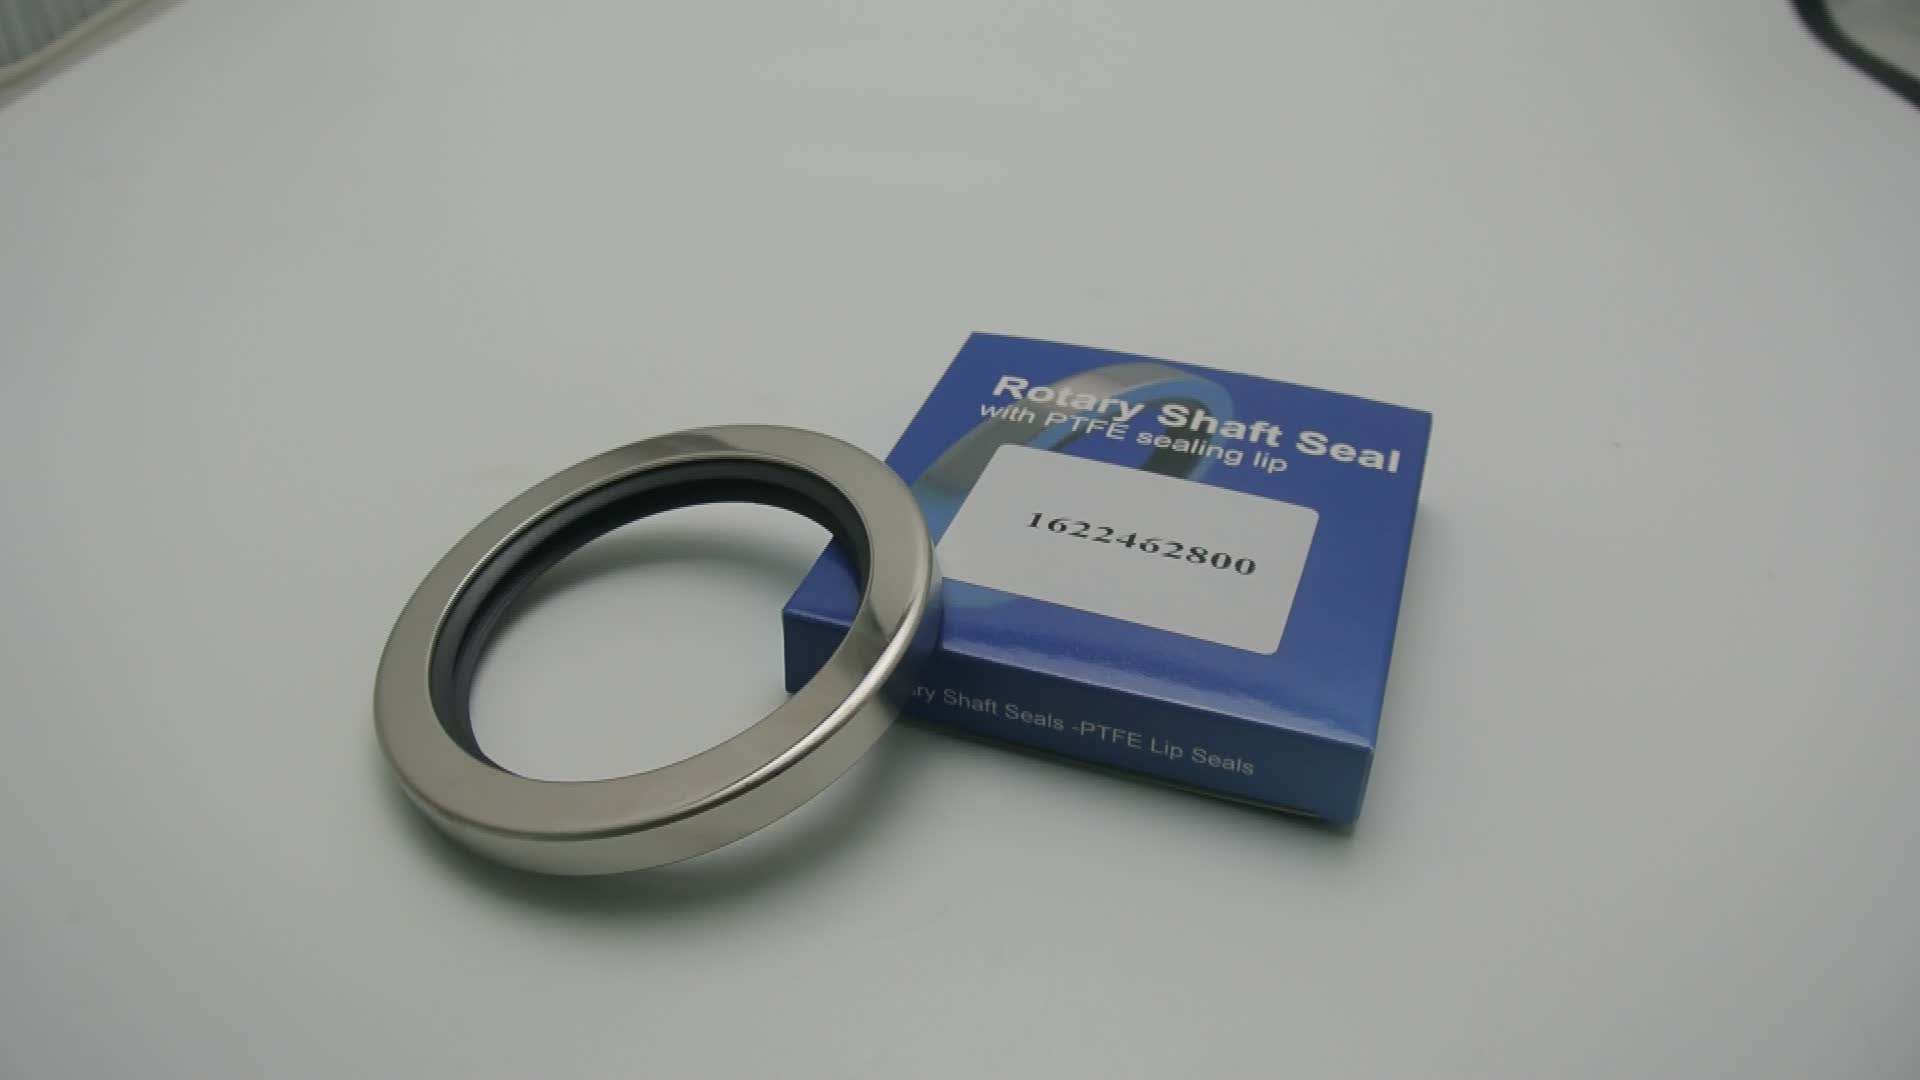 1622462800 PTFE Shaft Seals for Screw compressor